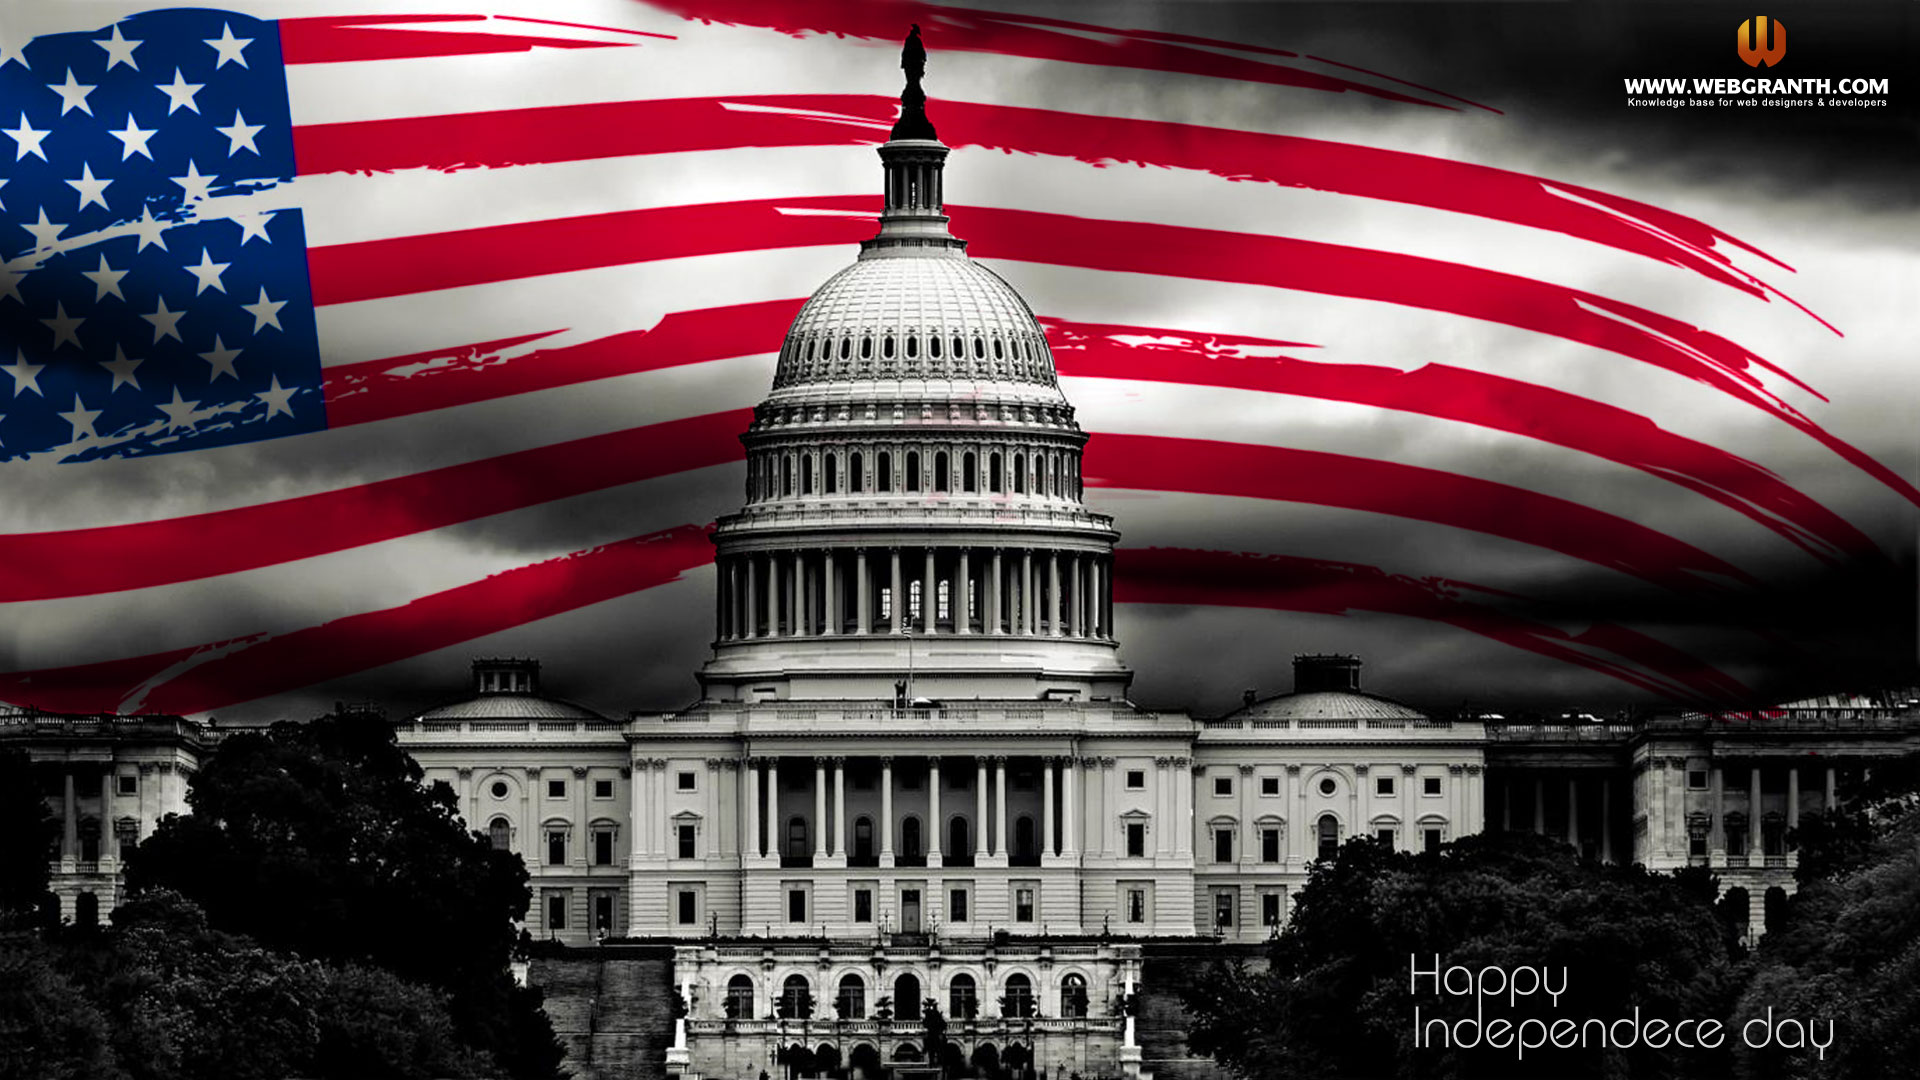 Download Usa Wallpaper Pictures HD Widescreen pictures in high 1920x1080